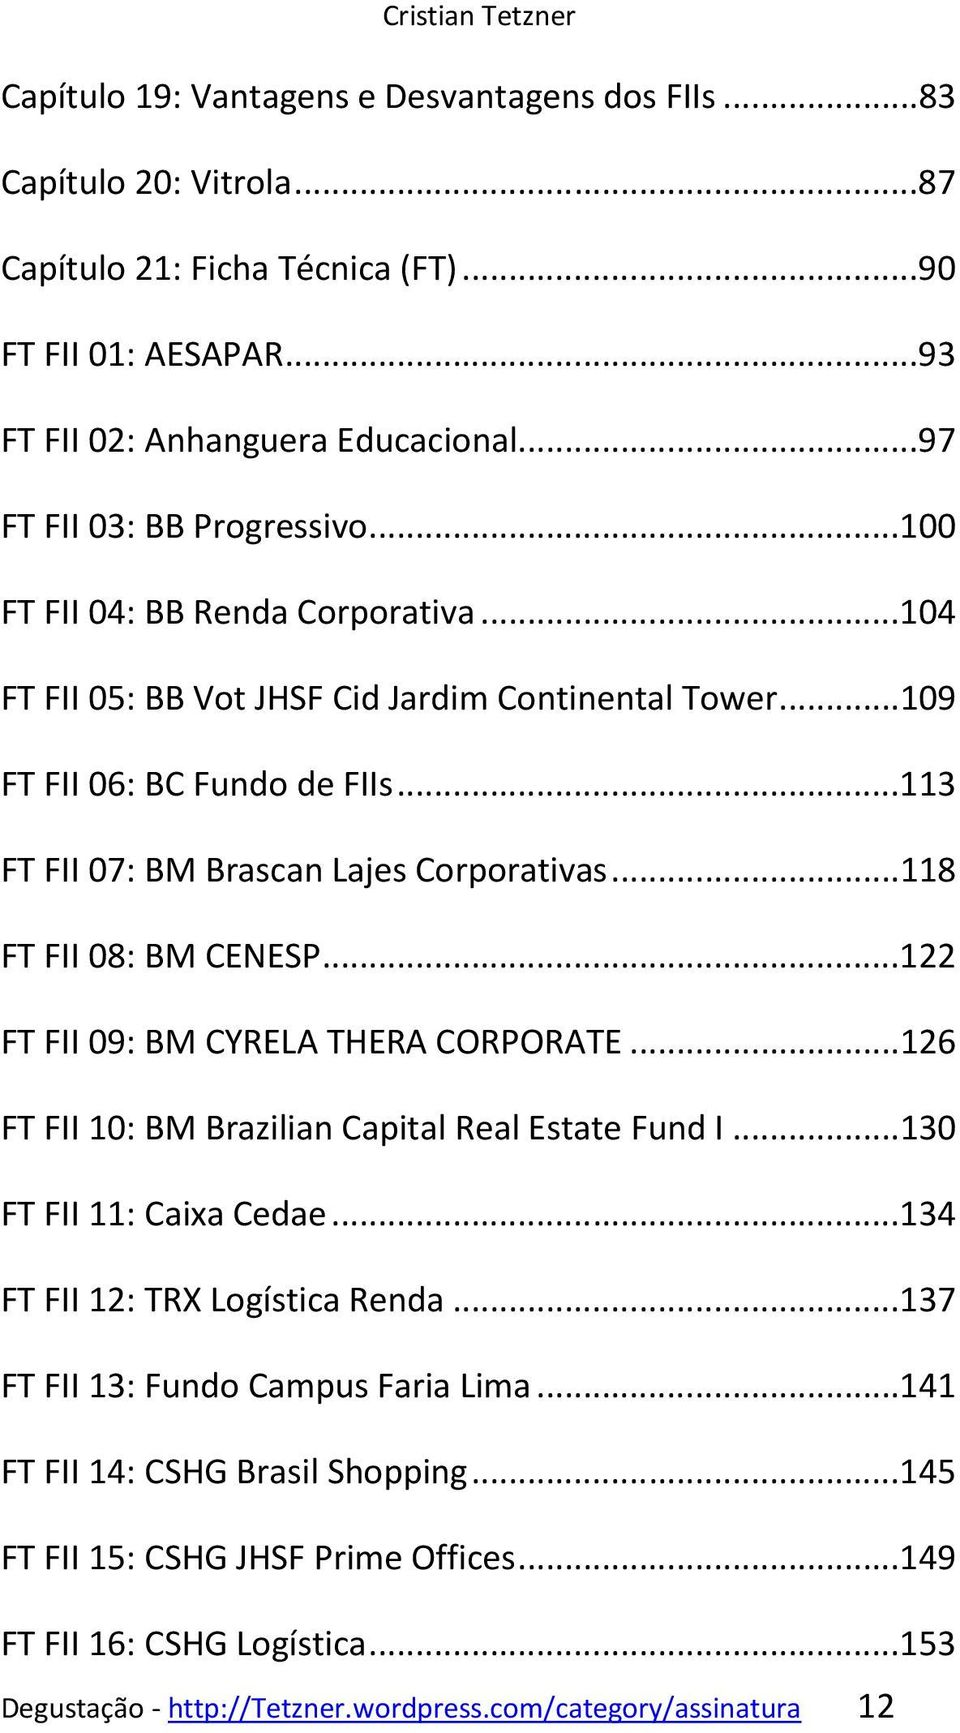 ..113 FT FII 07: BM Brascan Lajes Corporativas...118 FT FII 08: BM CENESP...122 FT FII 09: BM CYRELA THERA CORPORATE...126 FT FII 10: BM Brazilian Capital Real Estate Fund I.